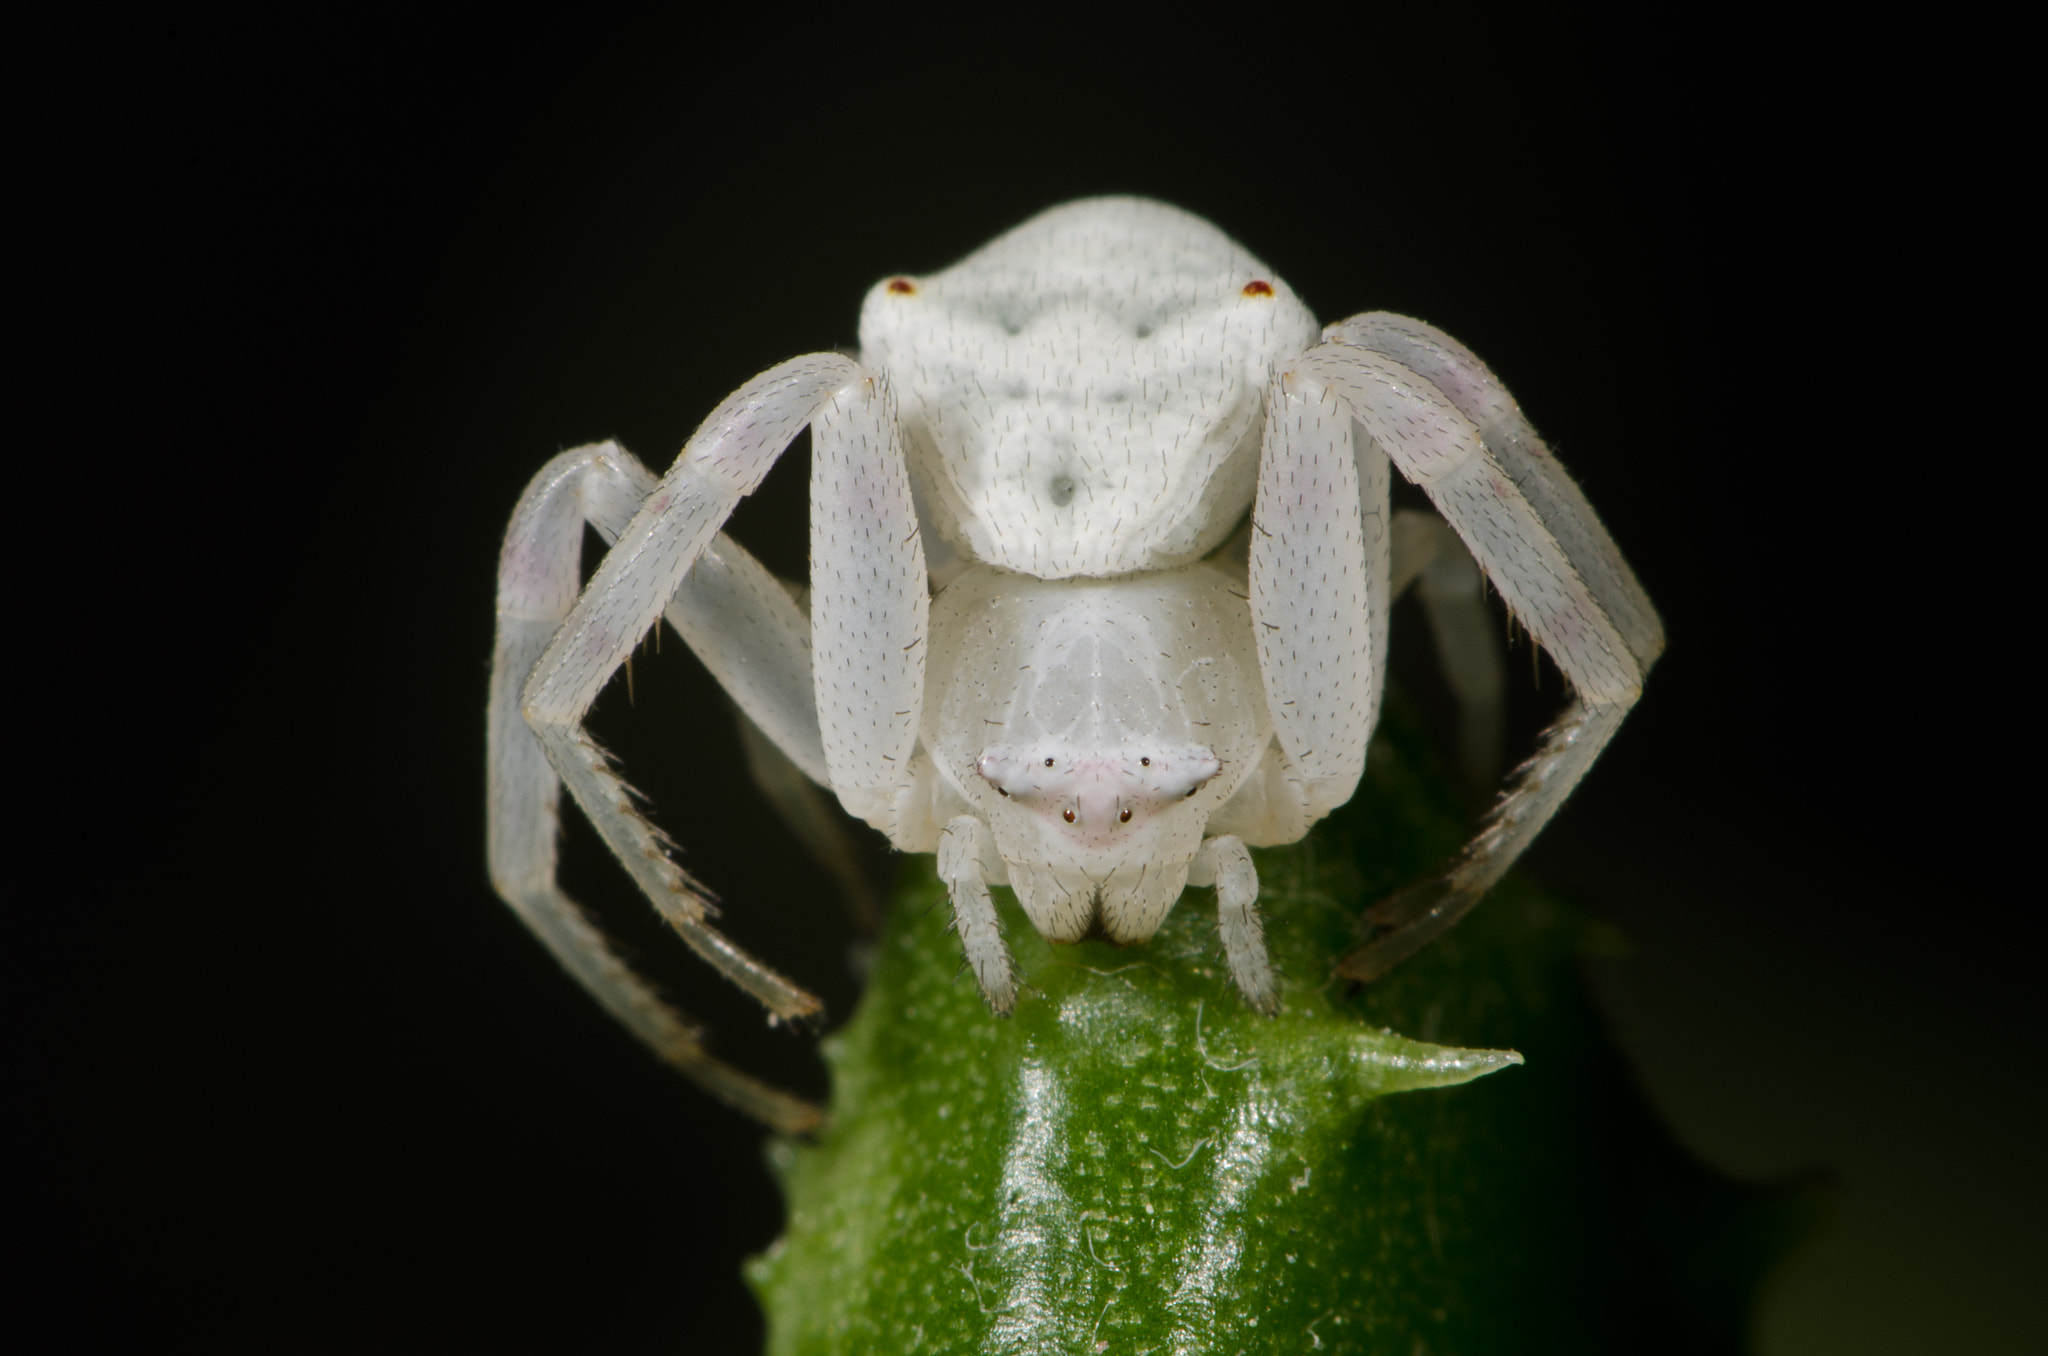 Photograph White crab spider No.2 by guidodelgiudice on 500px